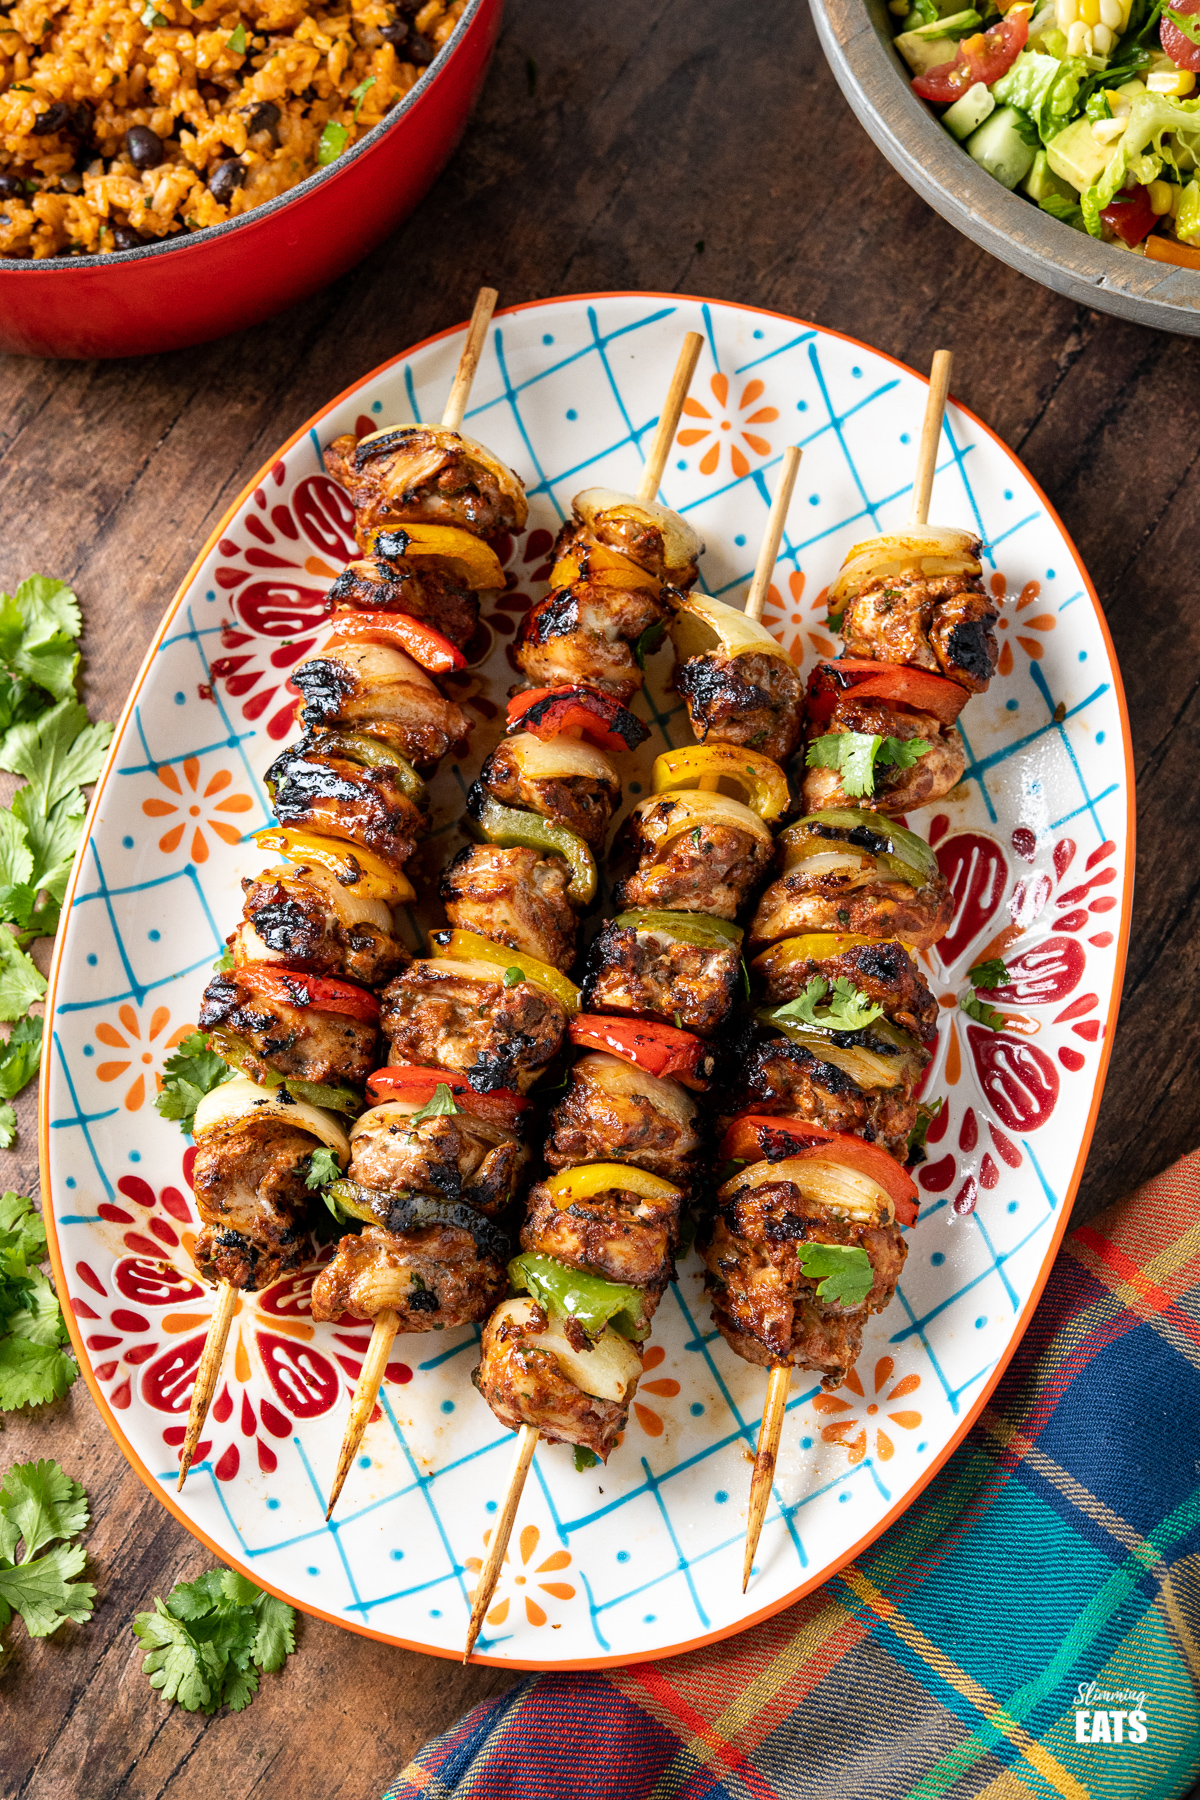 chicken skewers on a oval patterned plate with a pan or rice and bowl of salad in background